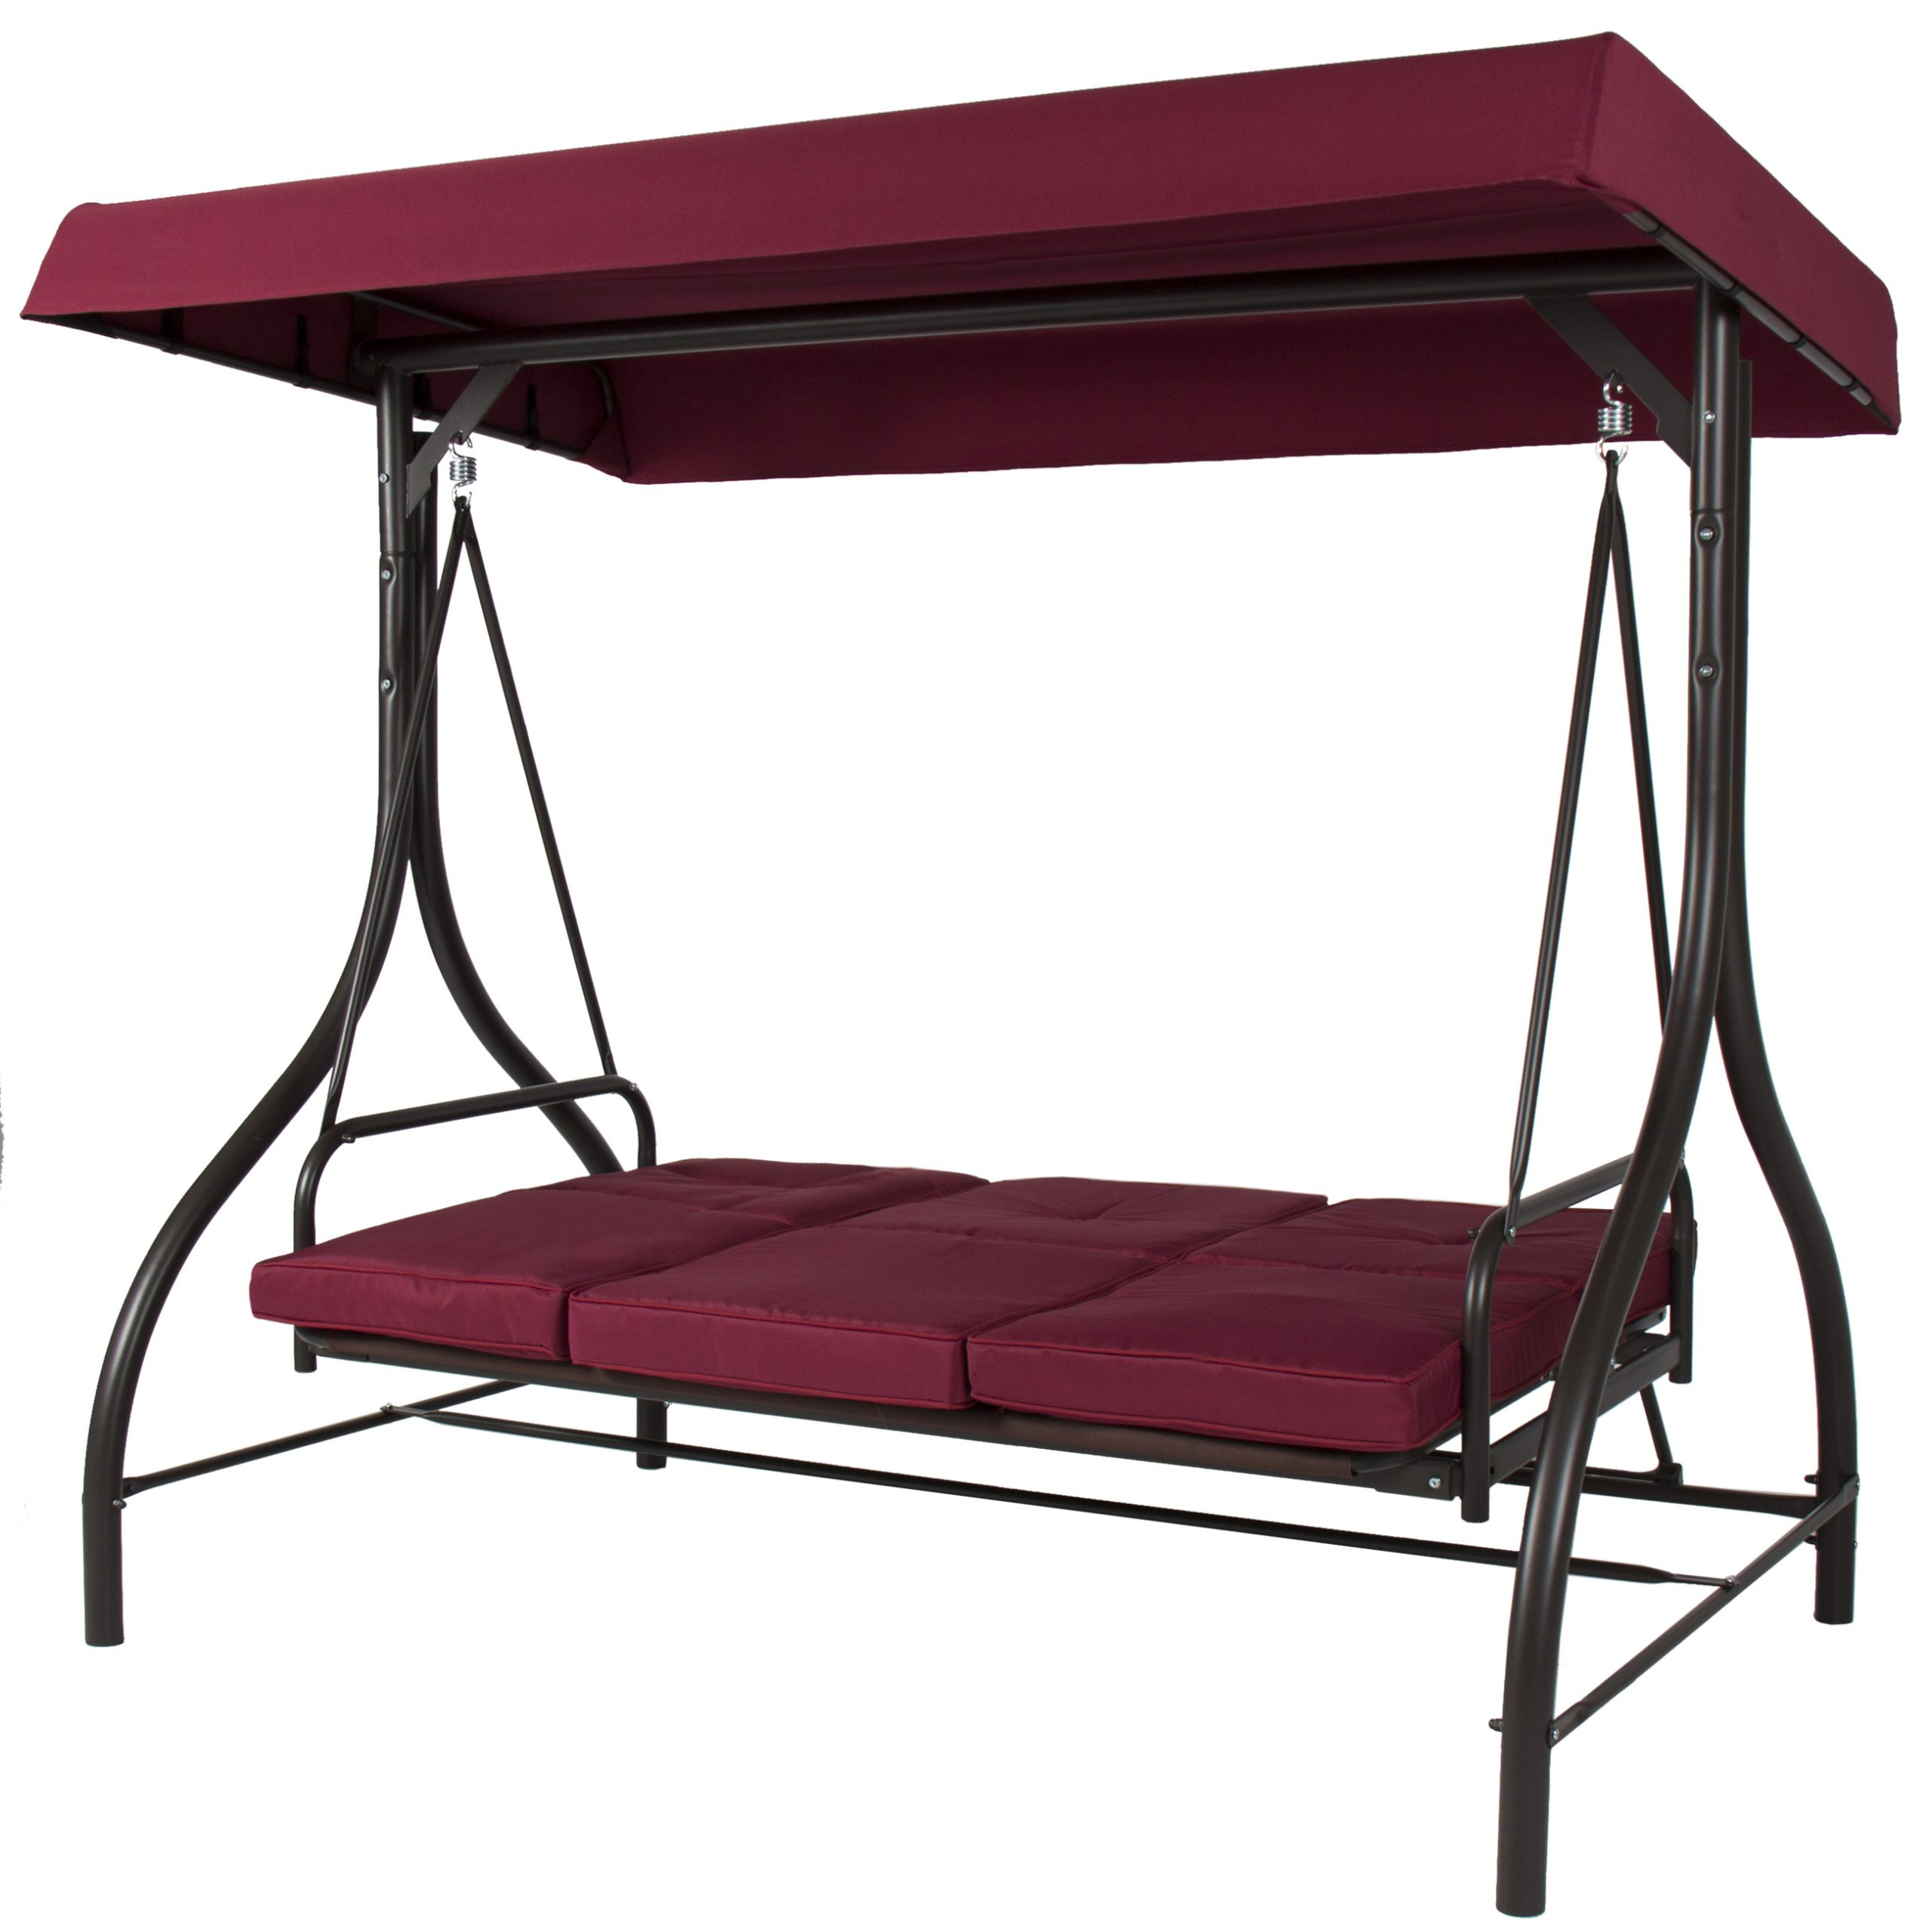 Best Choice Products 3 Seat Patio Porch Swing – Walmart For Trendy Canopy Porch Swings (Gallery 8 of 30)